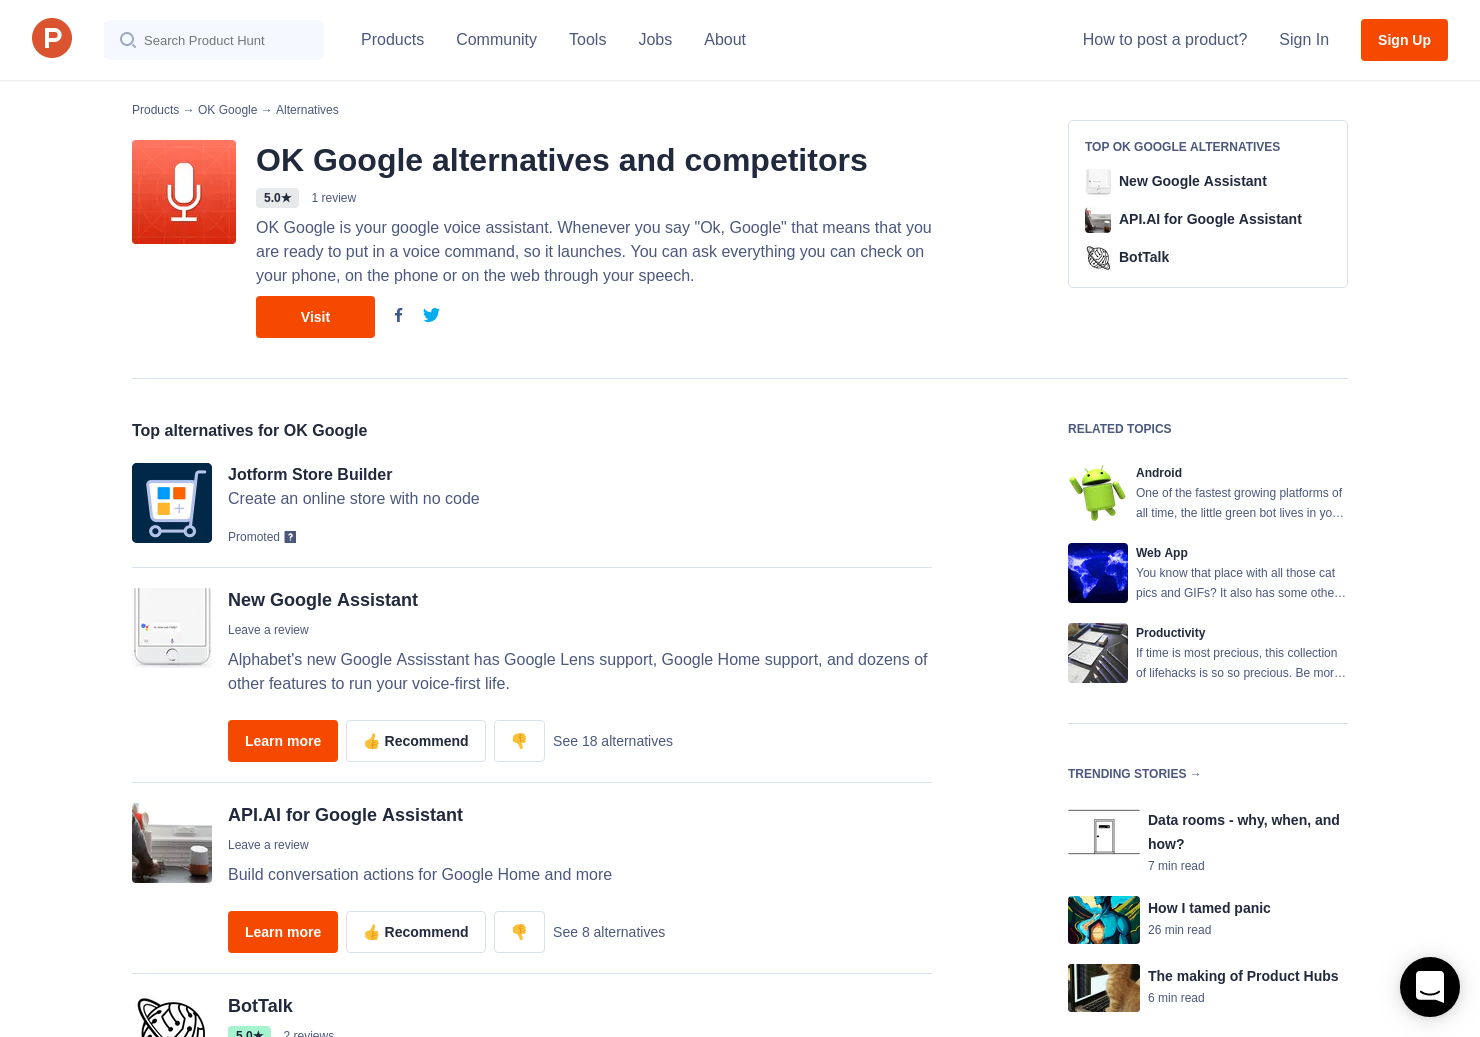 11 Alternatives to OK Google for Android | Product Hunt